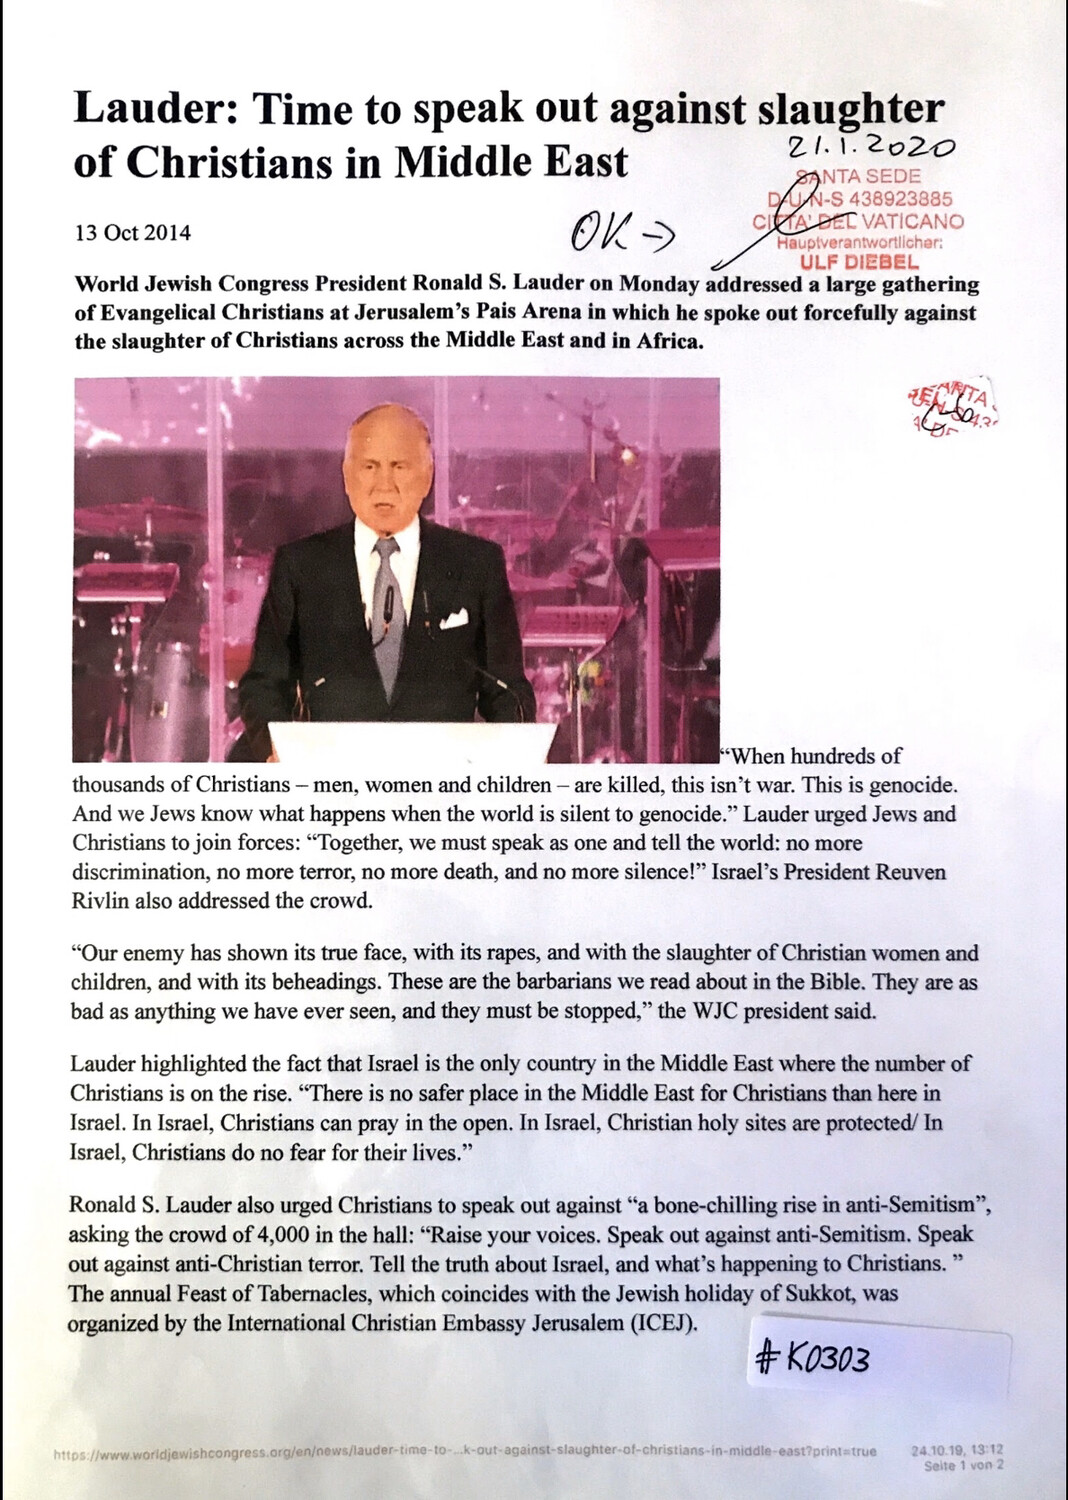 #K0303 l Lauder: Time to speak out against slaughter of Christians in Middle East